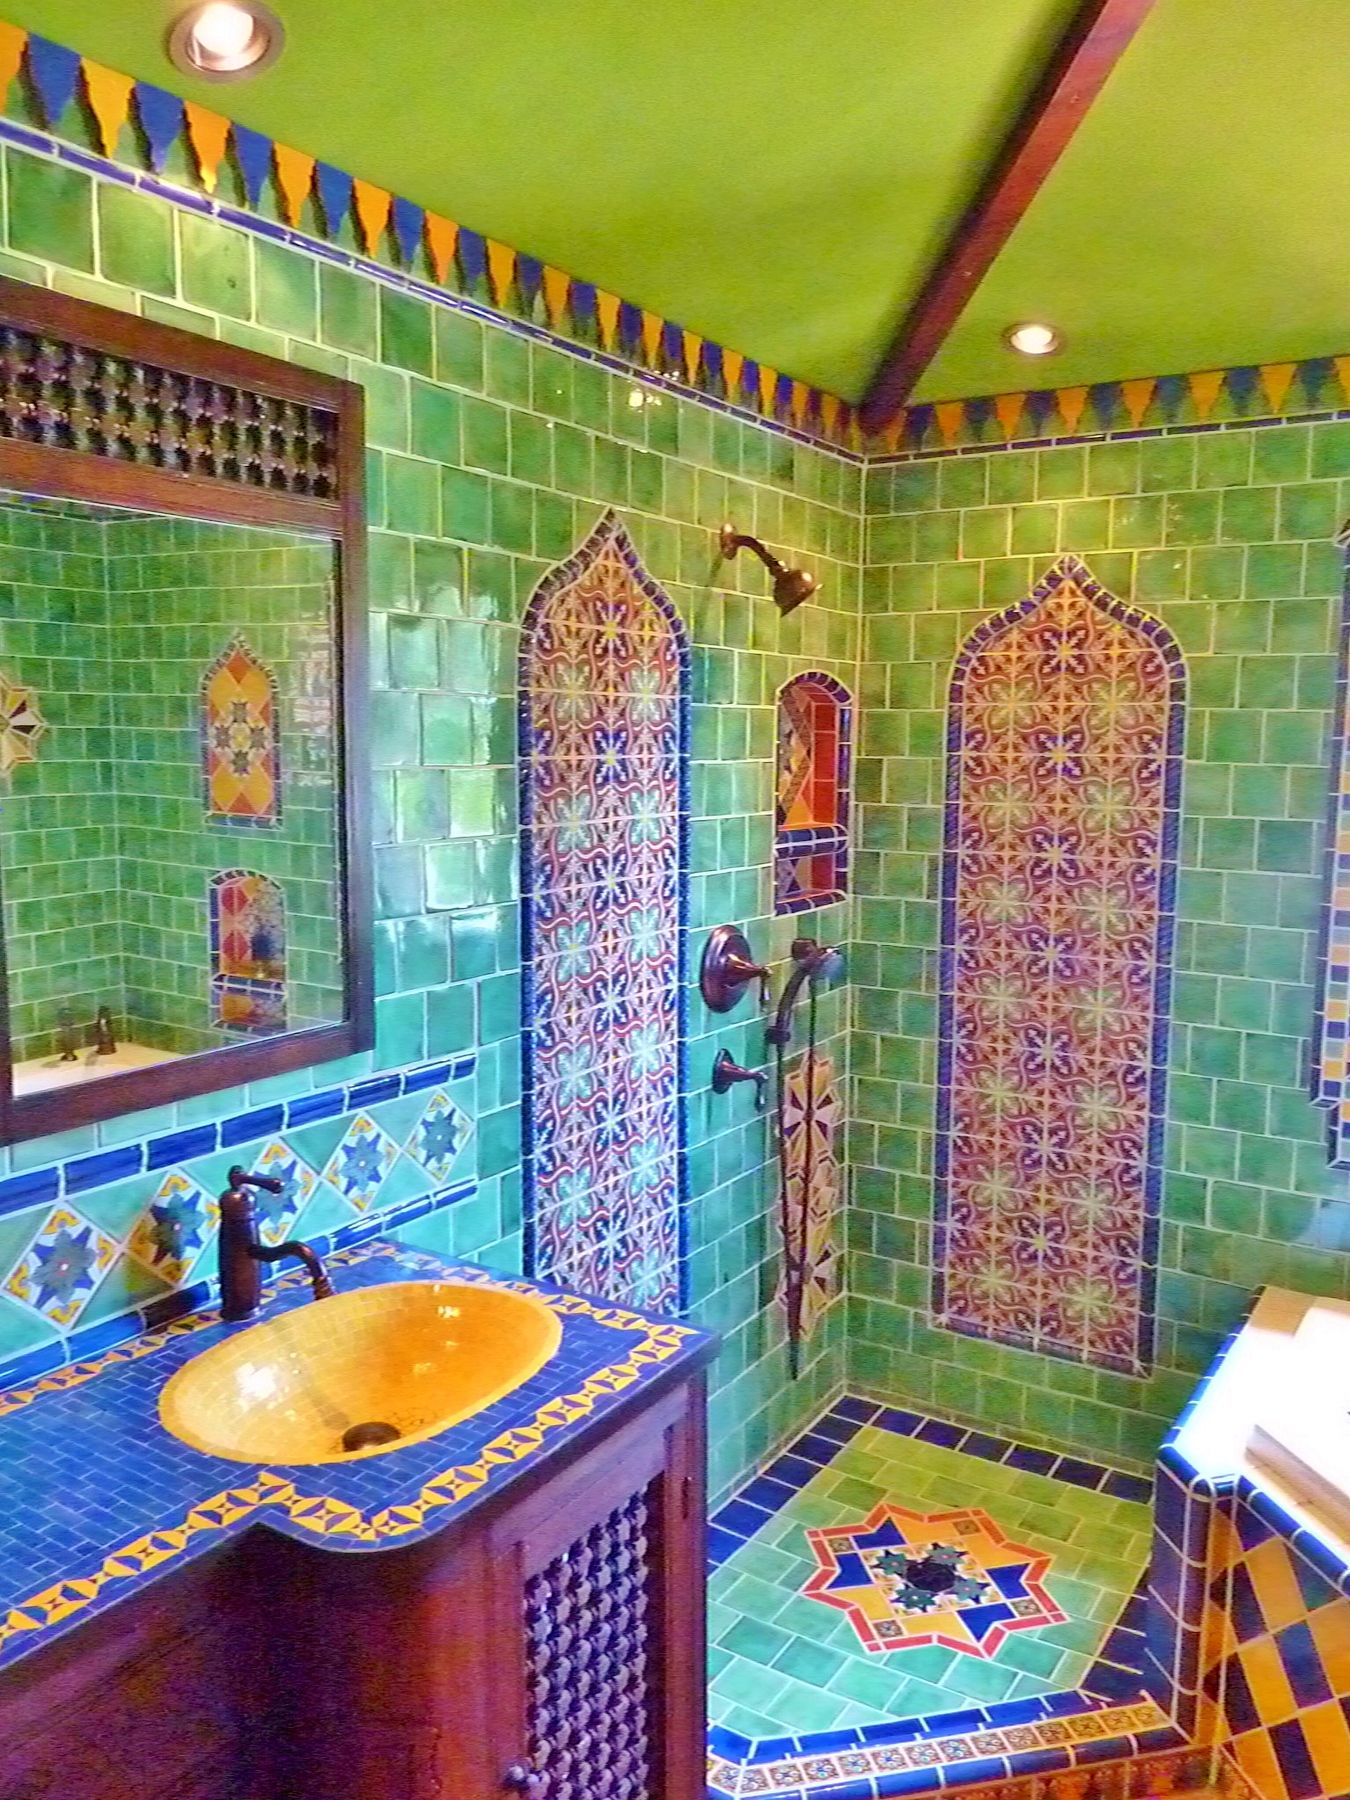 Türkise Küchenfliesen Moroccan Themed Bathroom Using Turkish Moroccan And Mexican Tiles